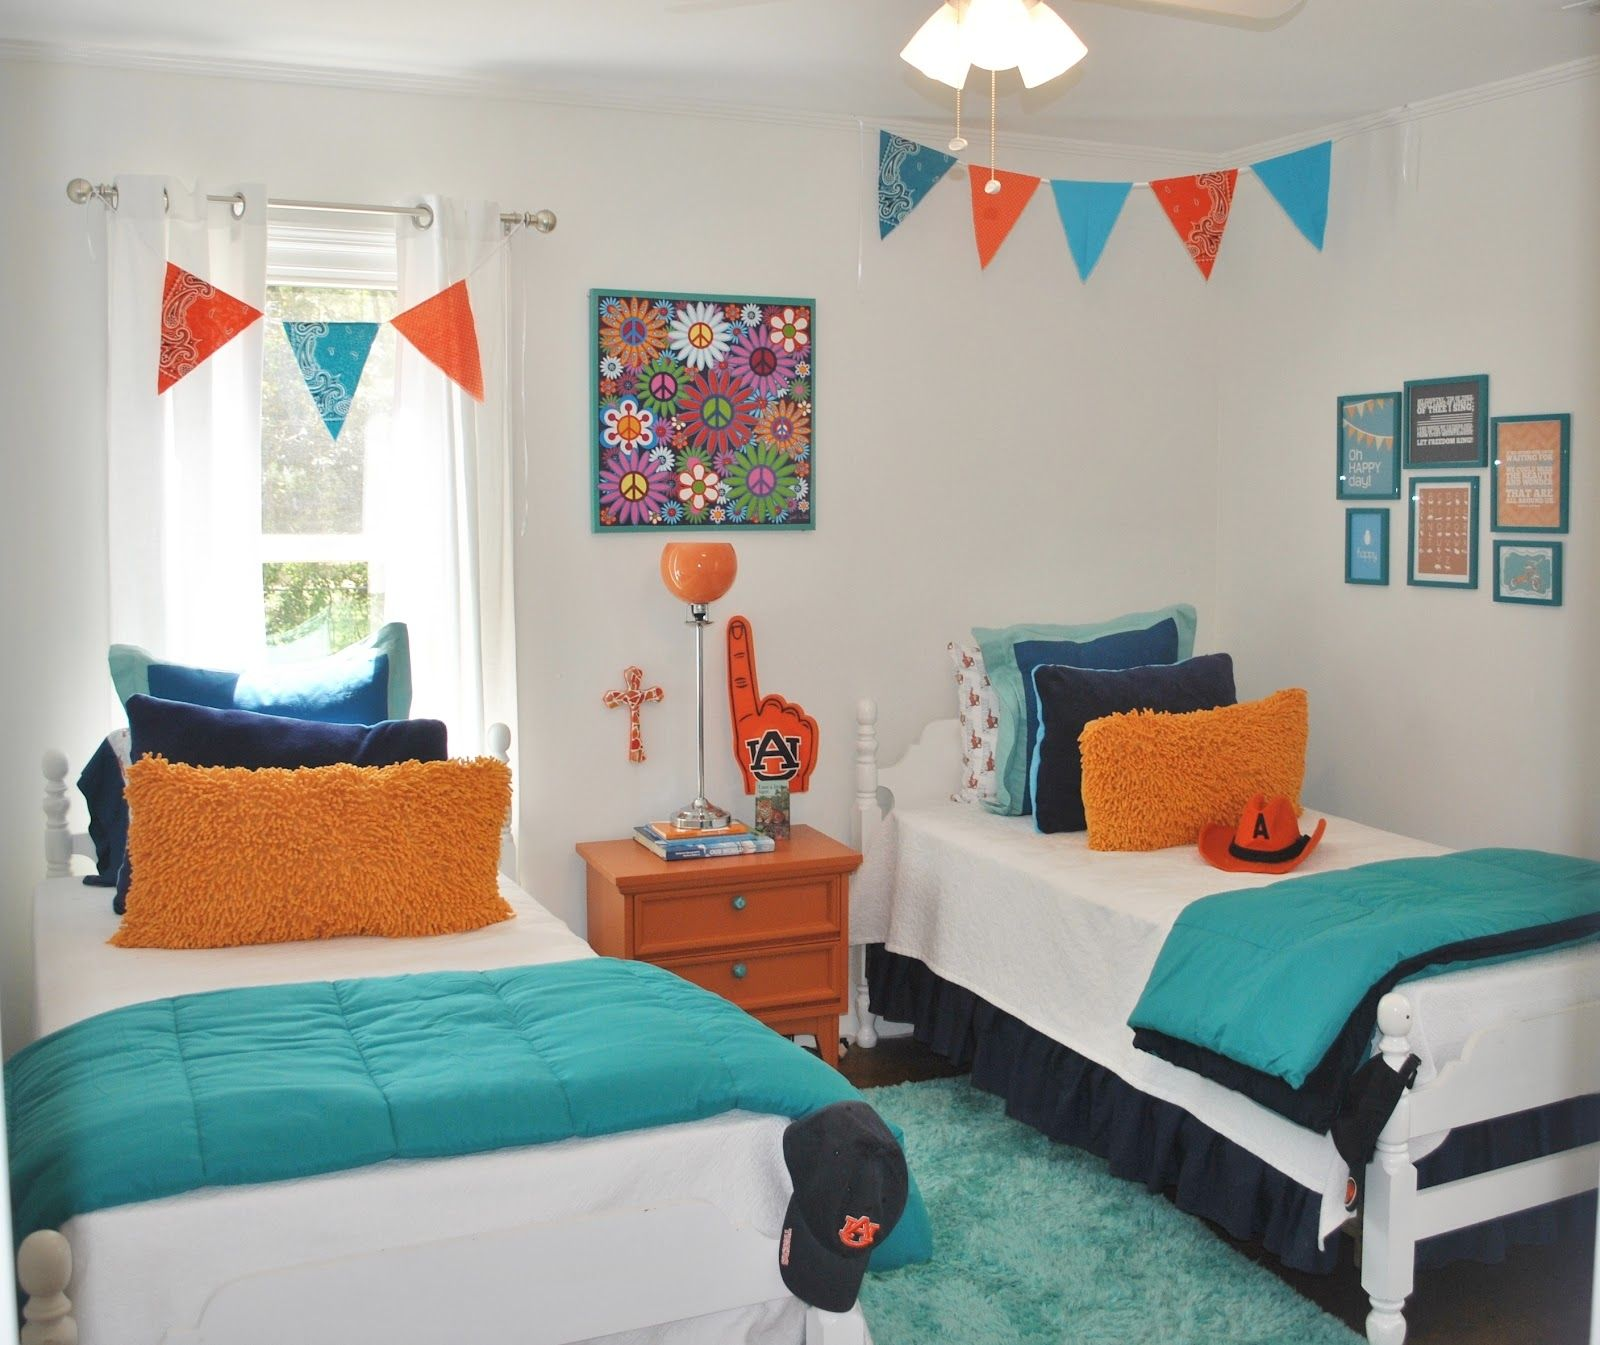 Ideas With 2 Beds Shared Girls Bedroom Boy And Girl Shared